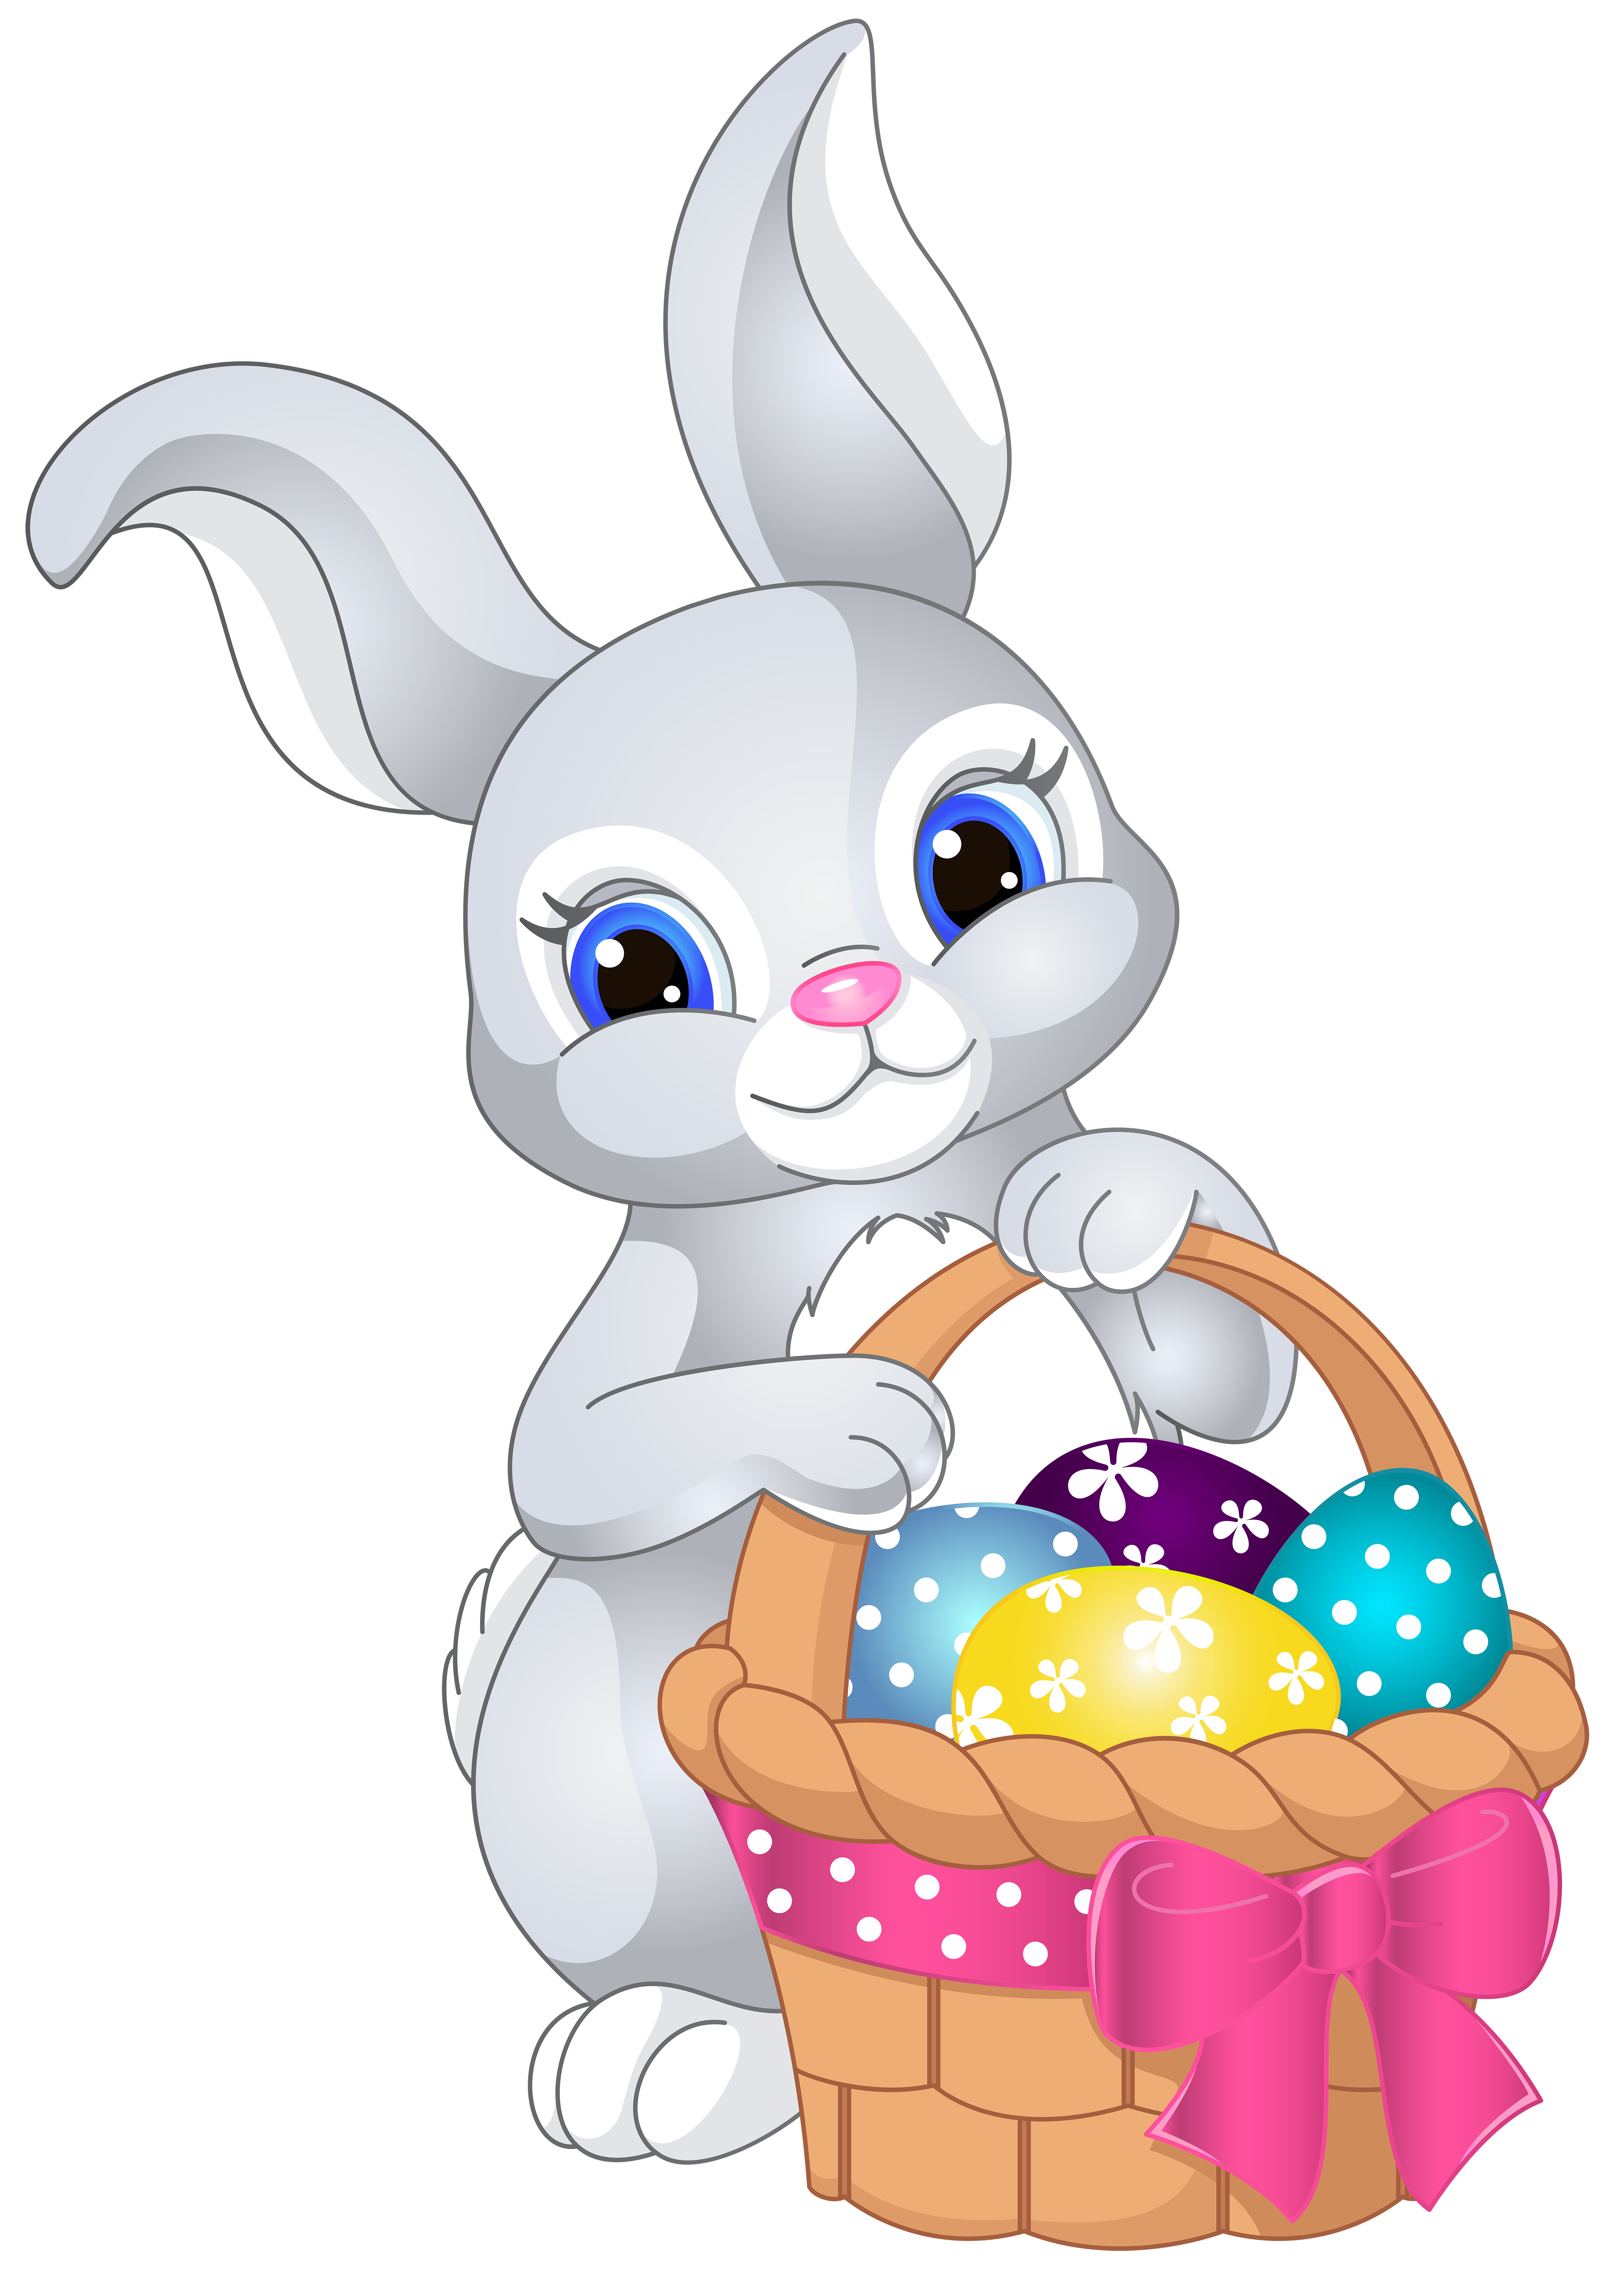 easter bunny cartoon easter bunny pictures rabbit clipart easter gift easter crafts [ 5000 x 7000 Pixel ]